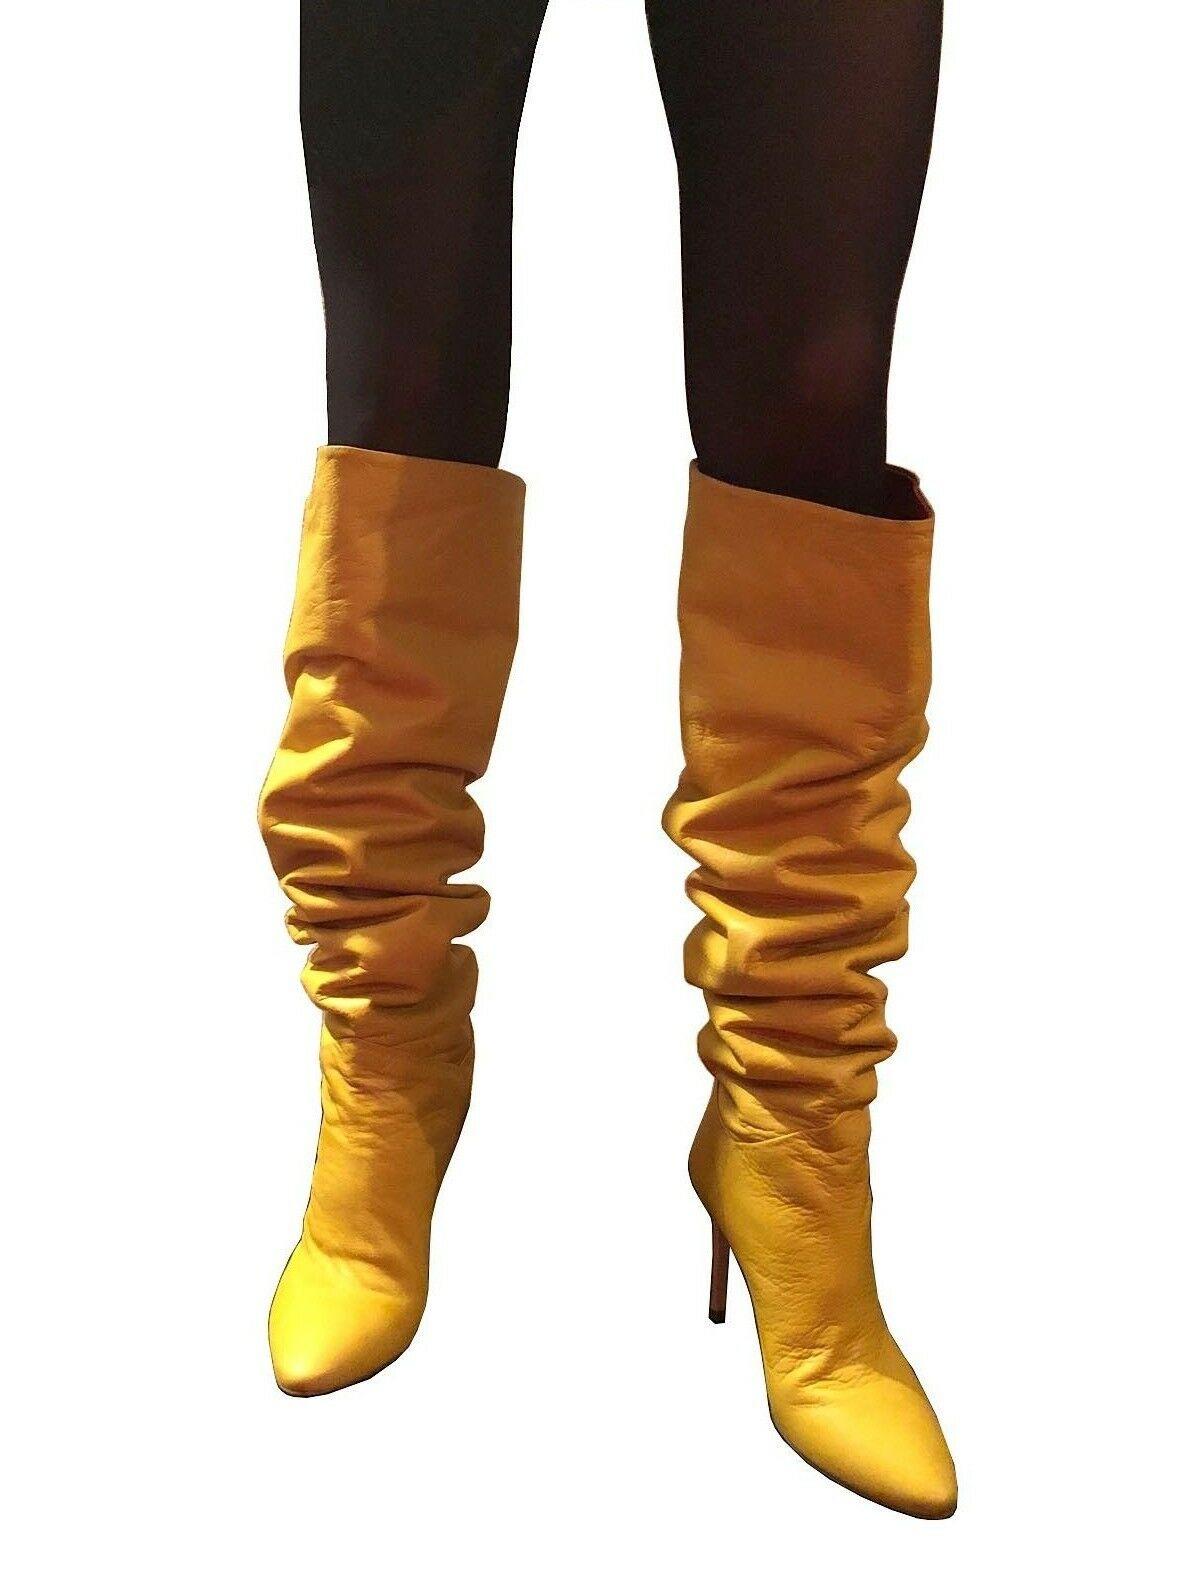 CQ COUTURE ITALY CUSTOM CUSTOM CUSTOM OVERKNEE BOOTS STIEFEL STIEFEL LEATHER YELLOW GELB 41 0d65a2